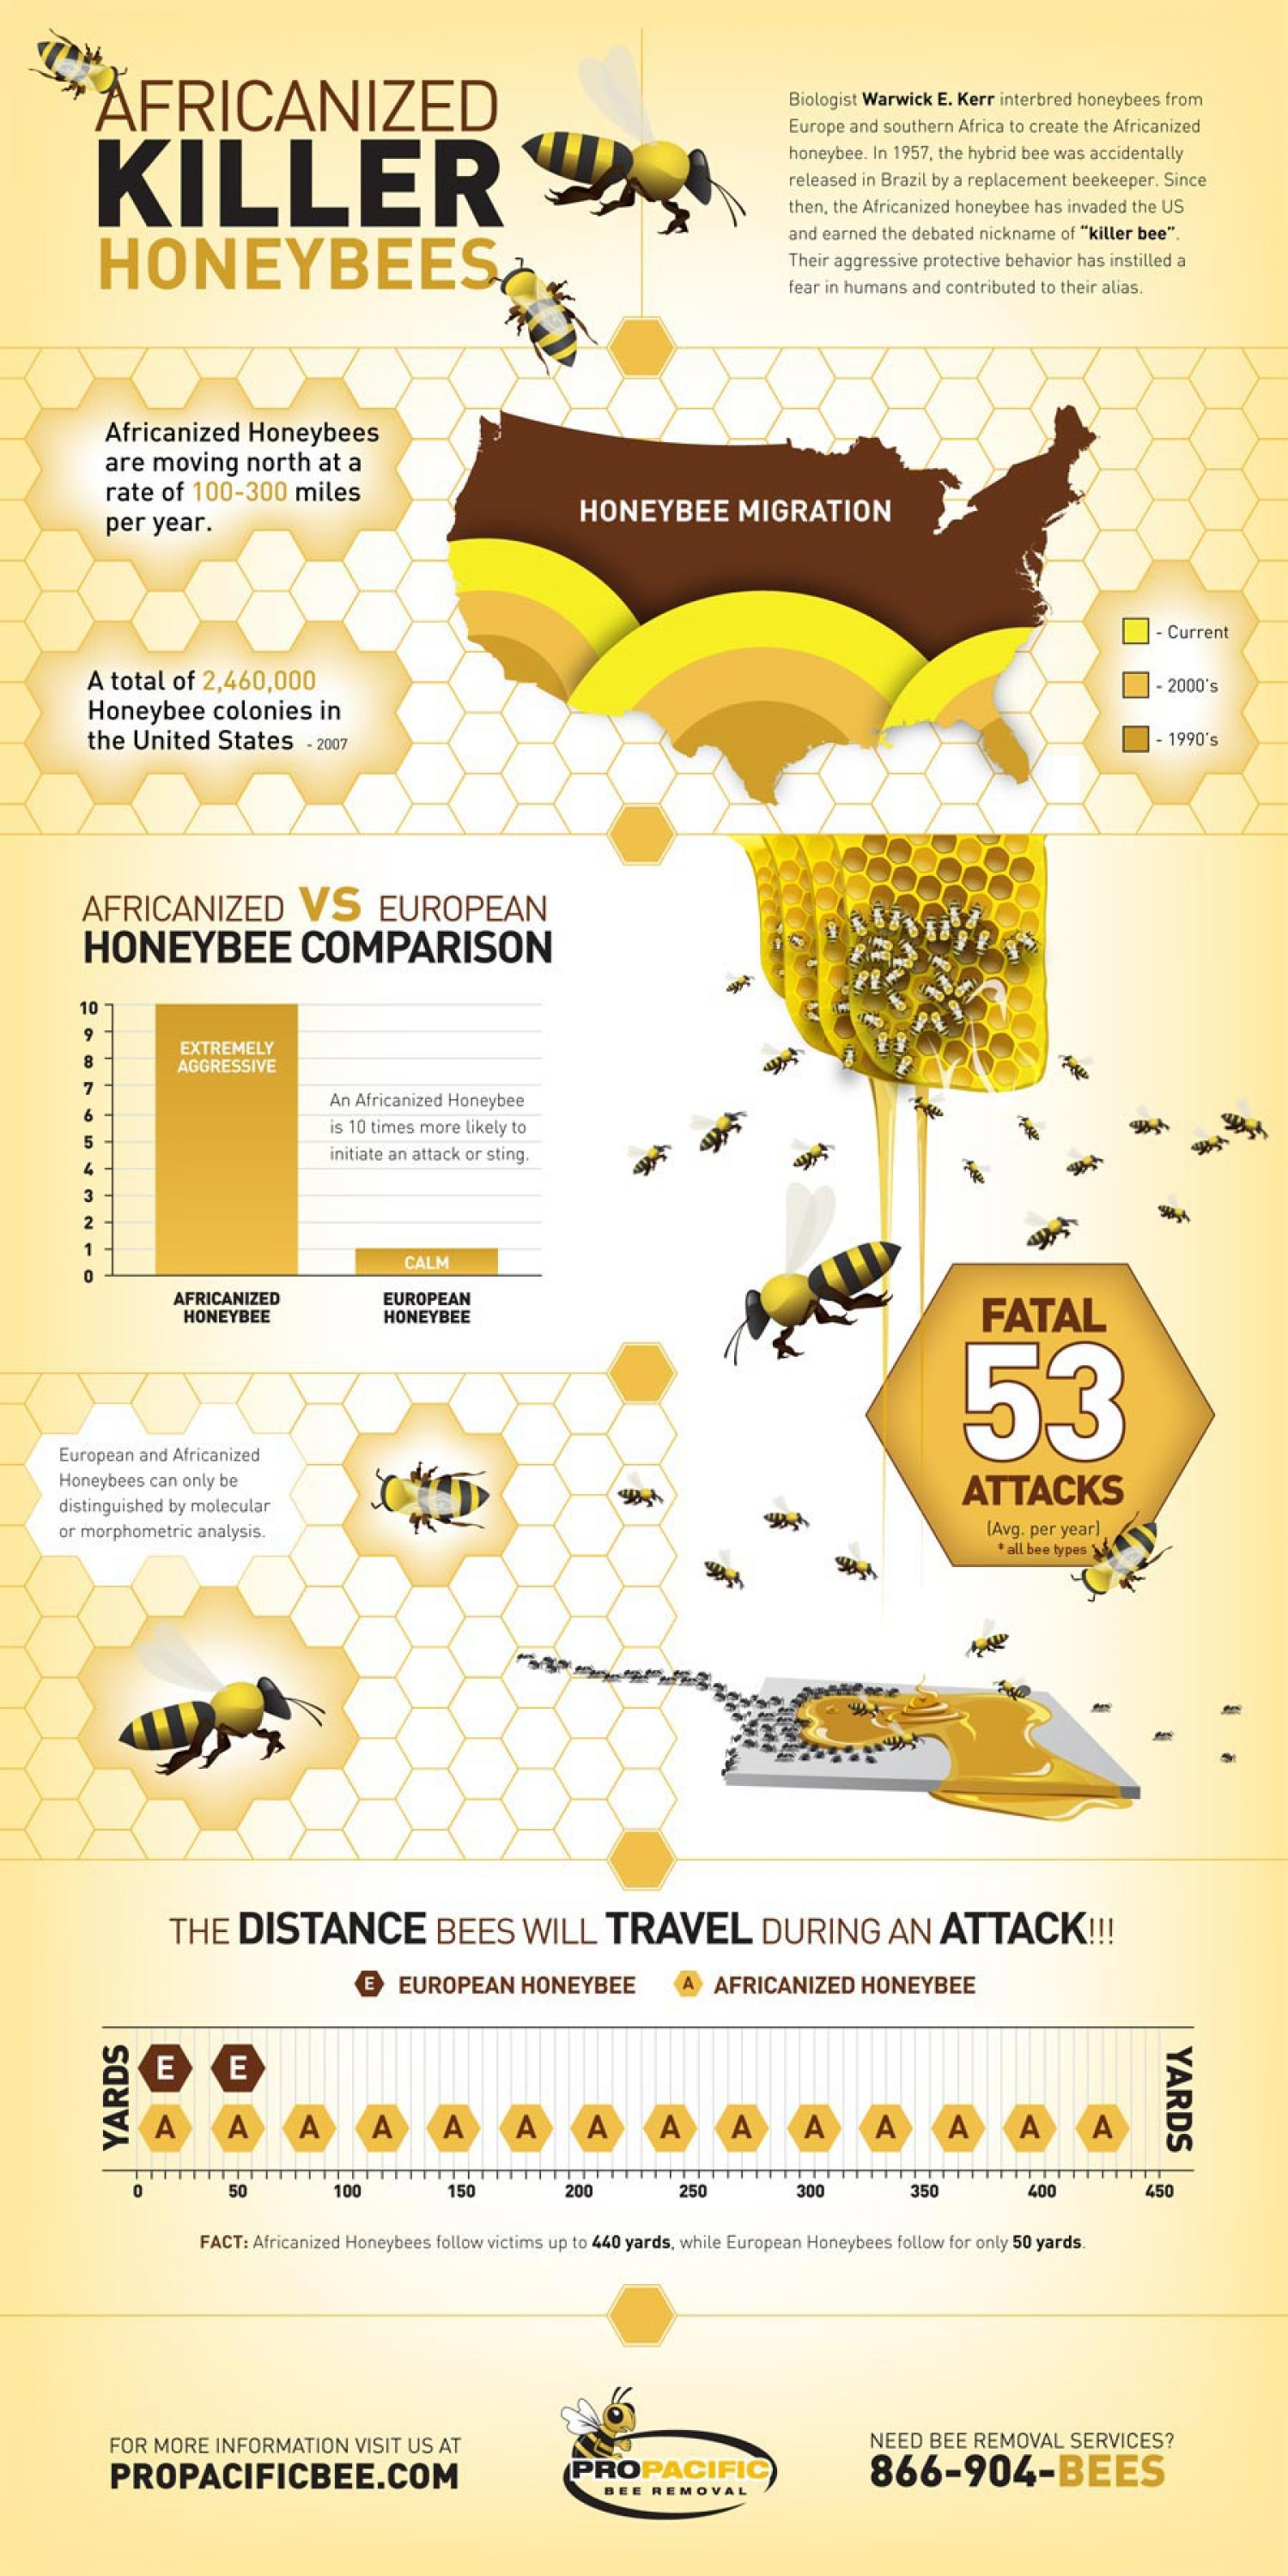 Africanized Killer Honey Bees Infographic